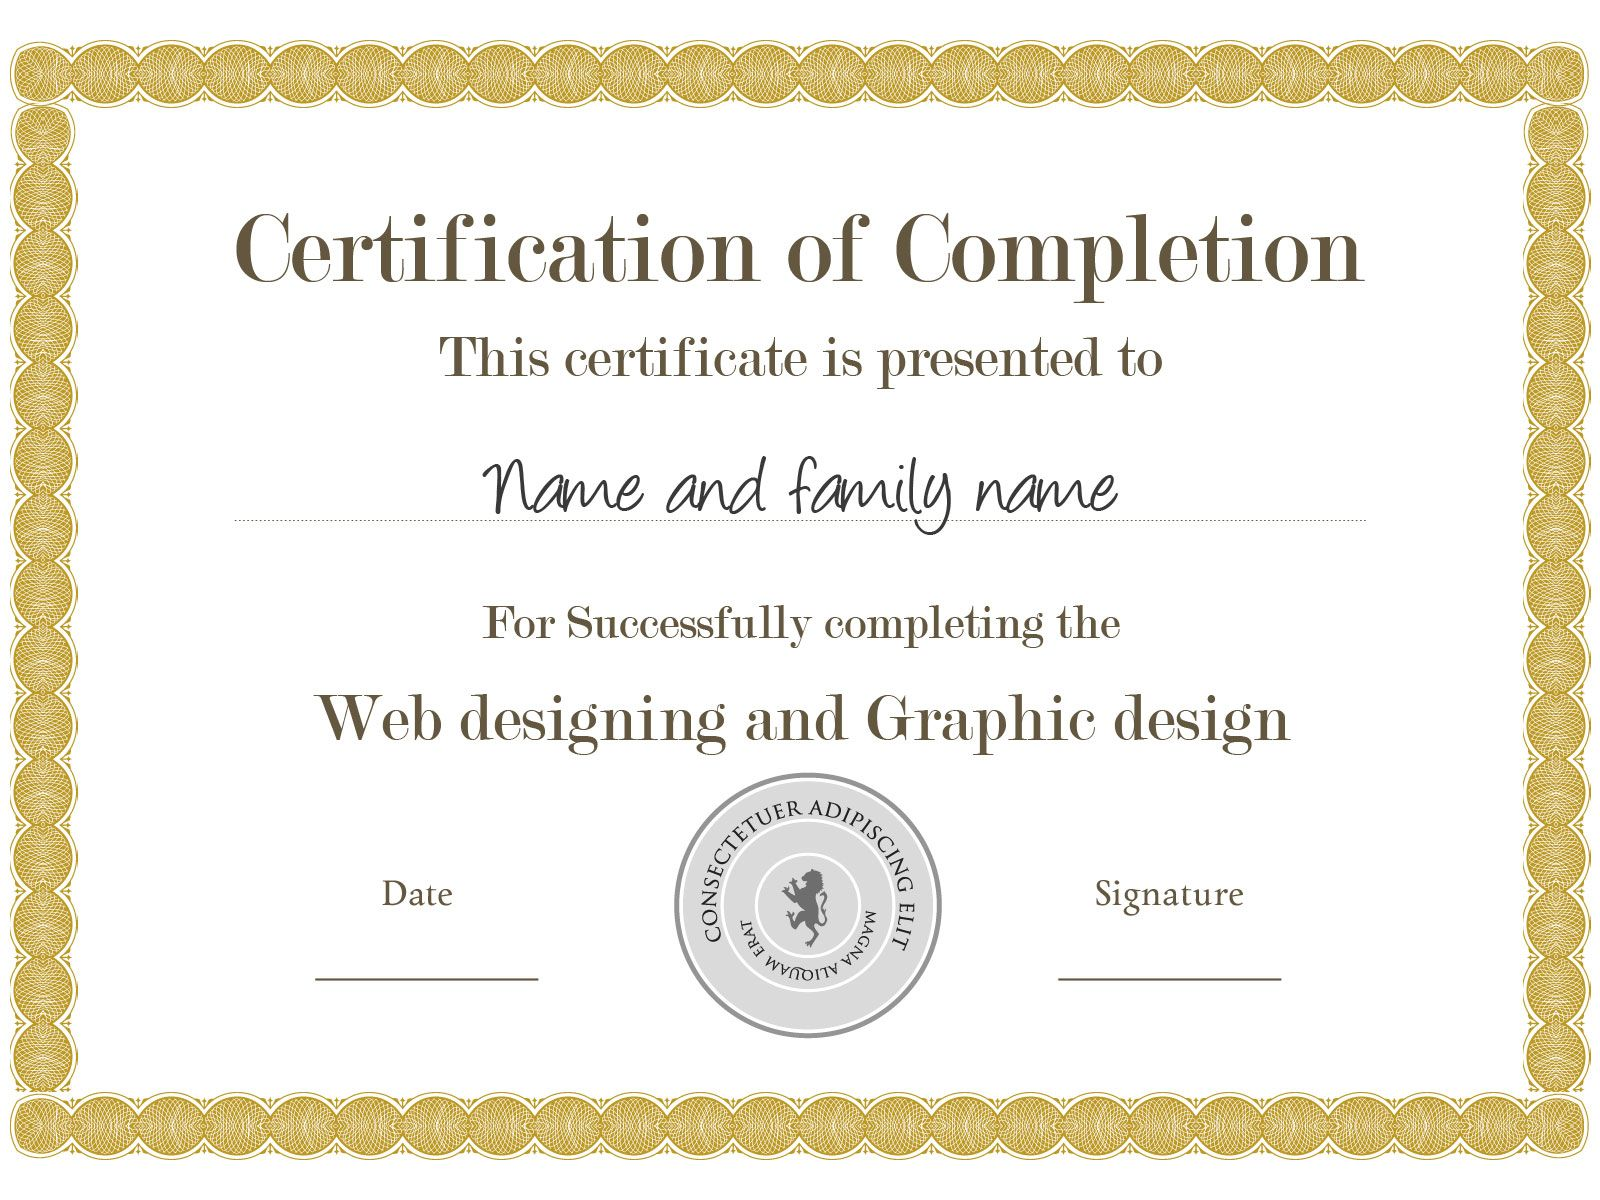 Example certificate template you can download this one and example certificate template you can download this one and others like it for free xflitez Images